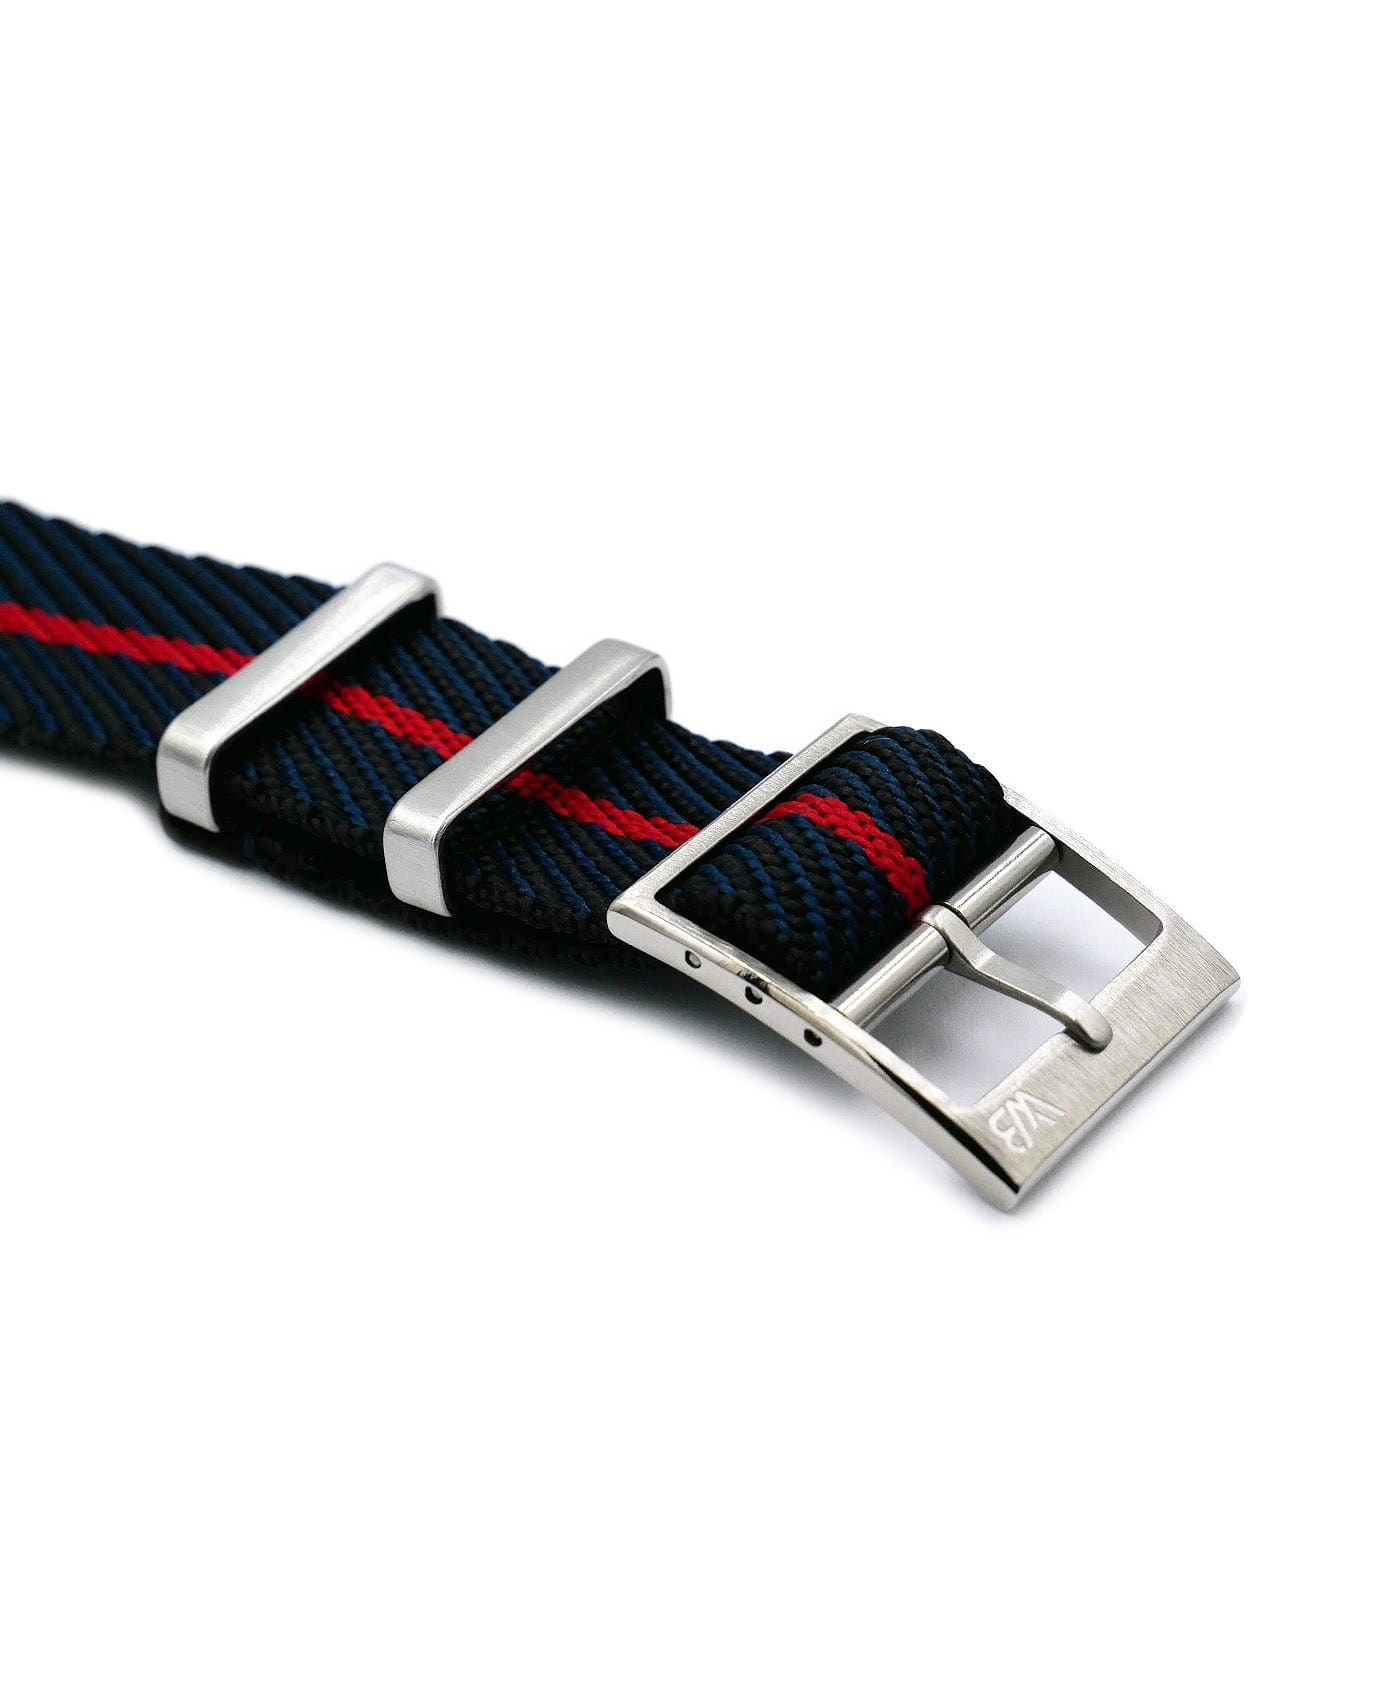 Adjustable NATO strap black blue red buckle